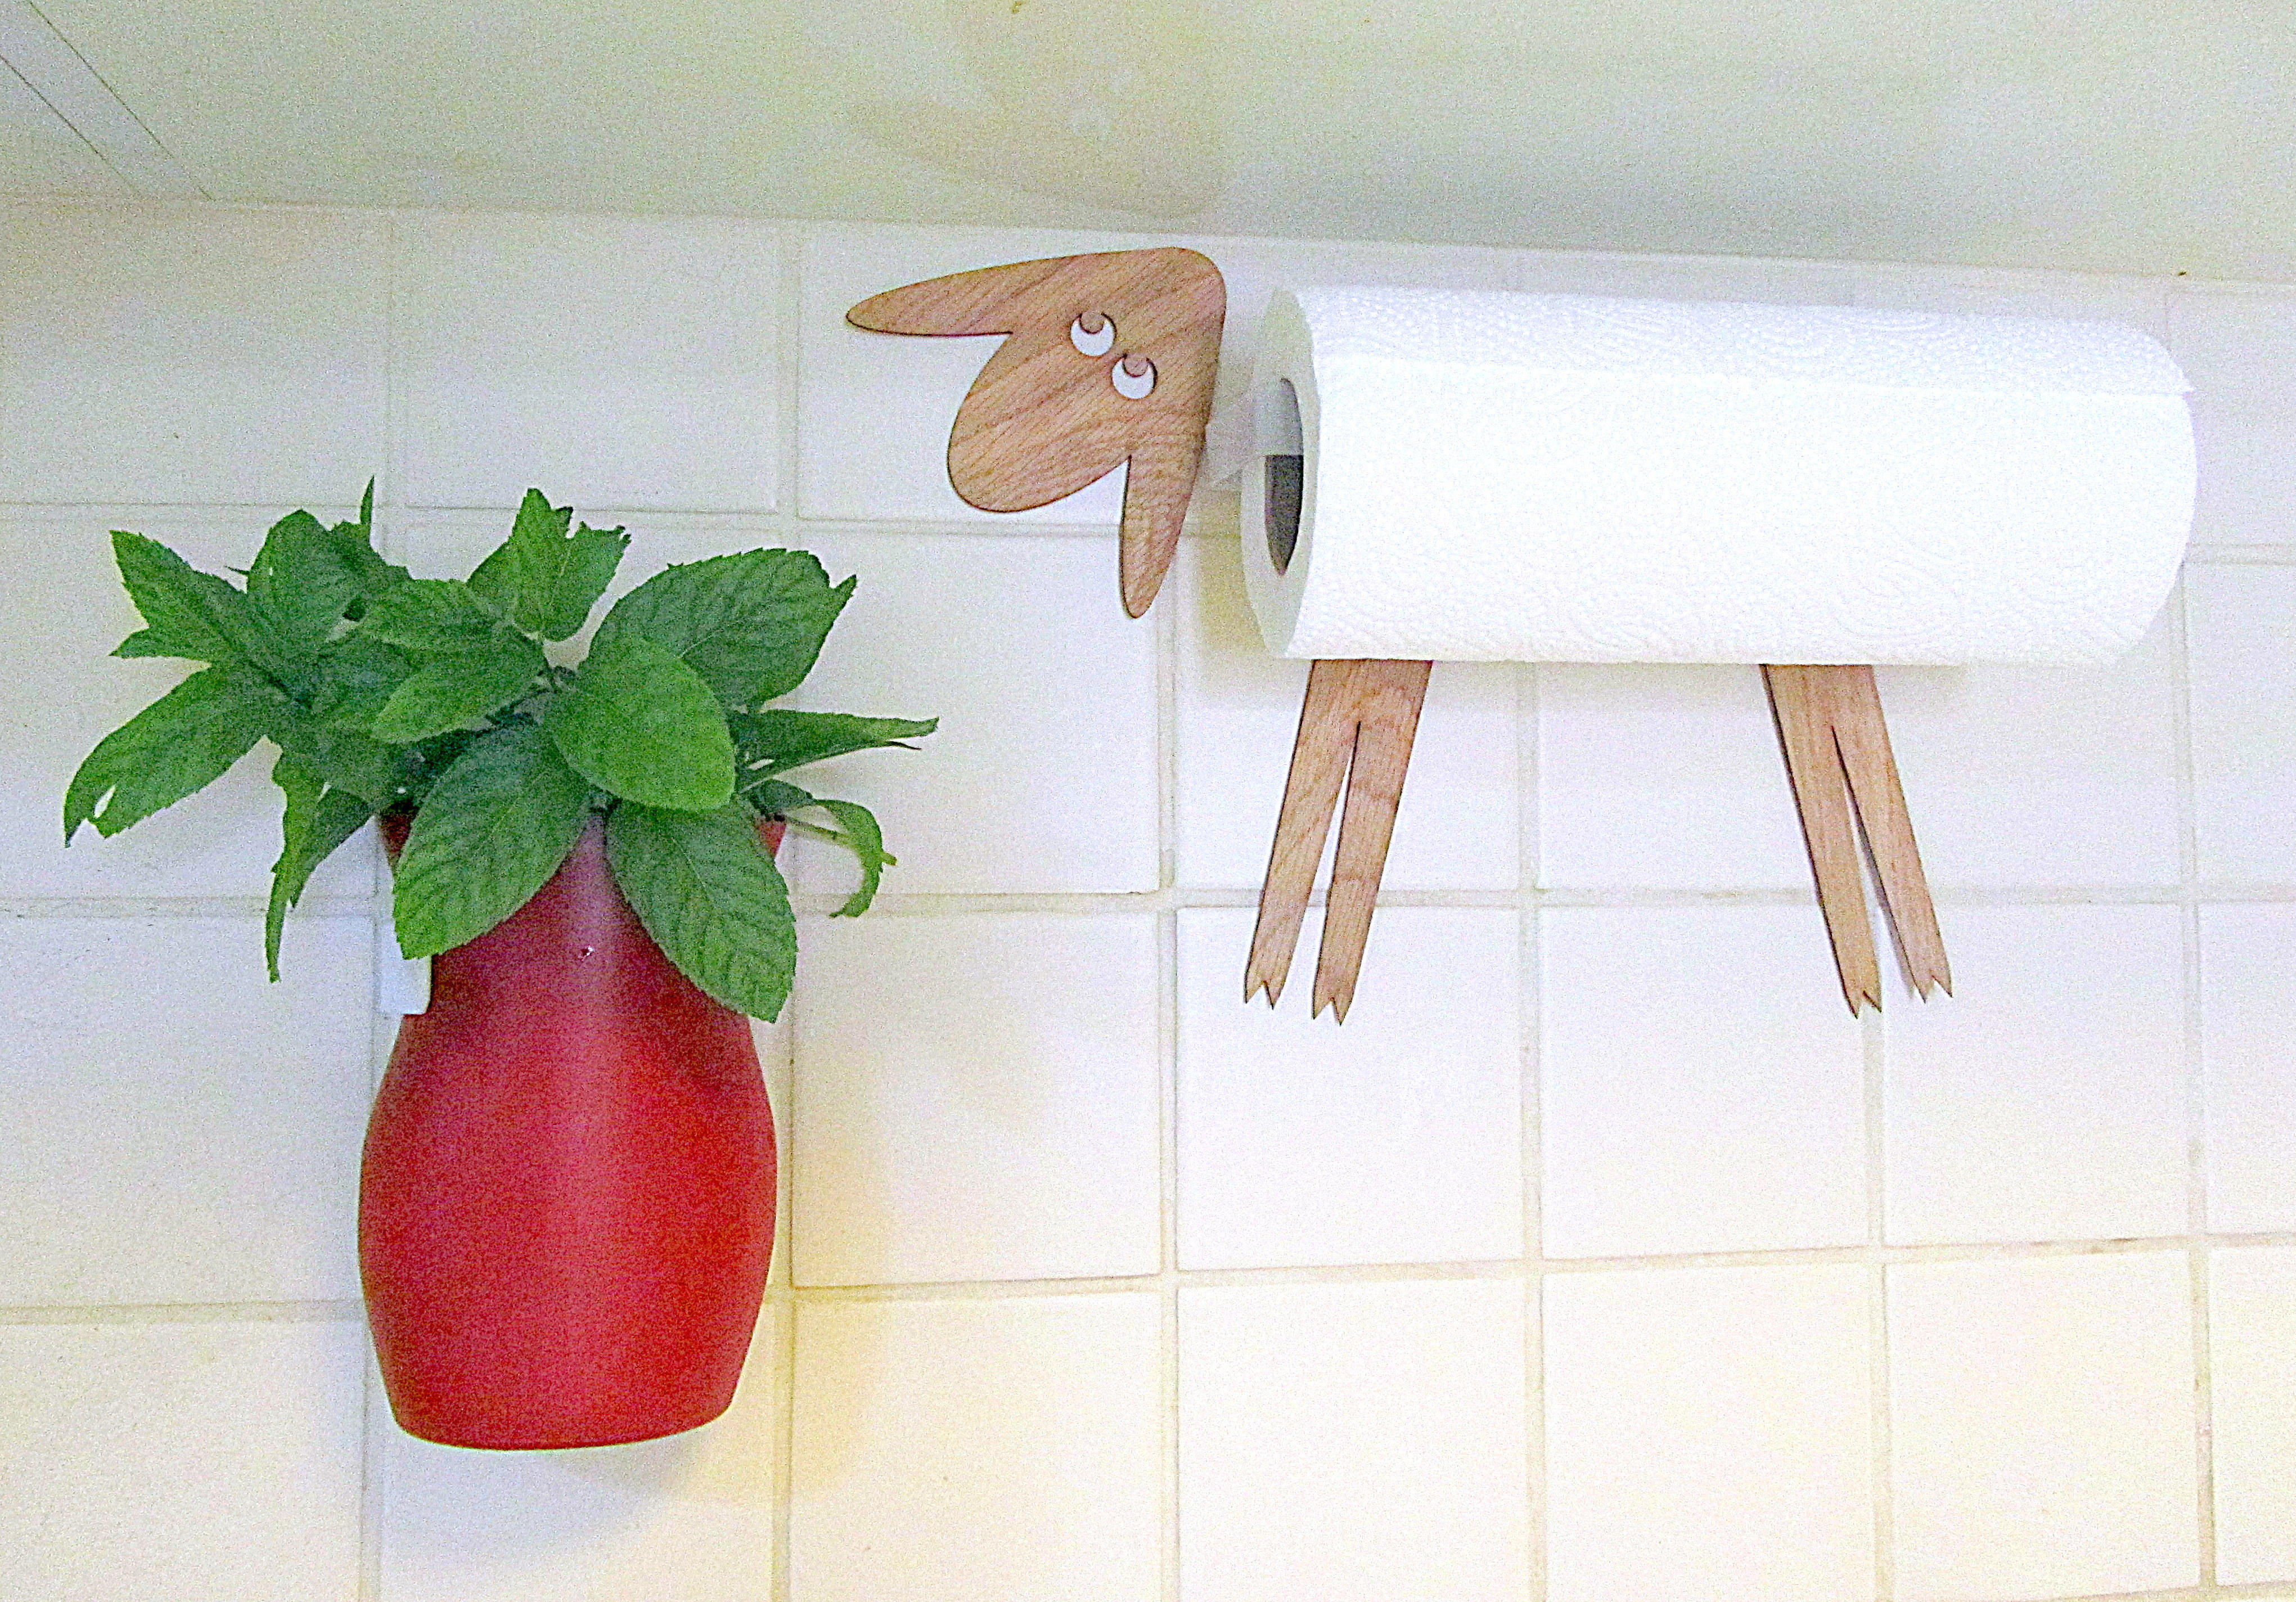 Removable wall jug for herbs.